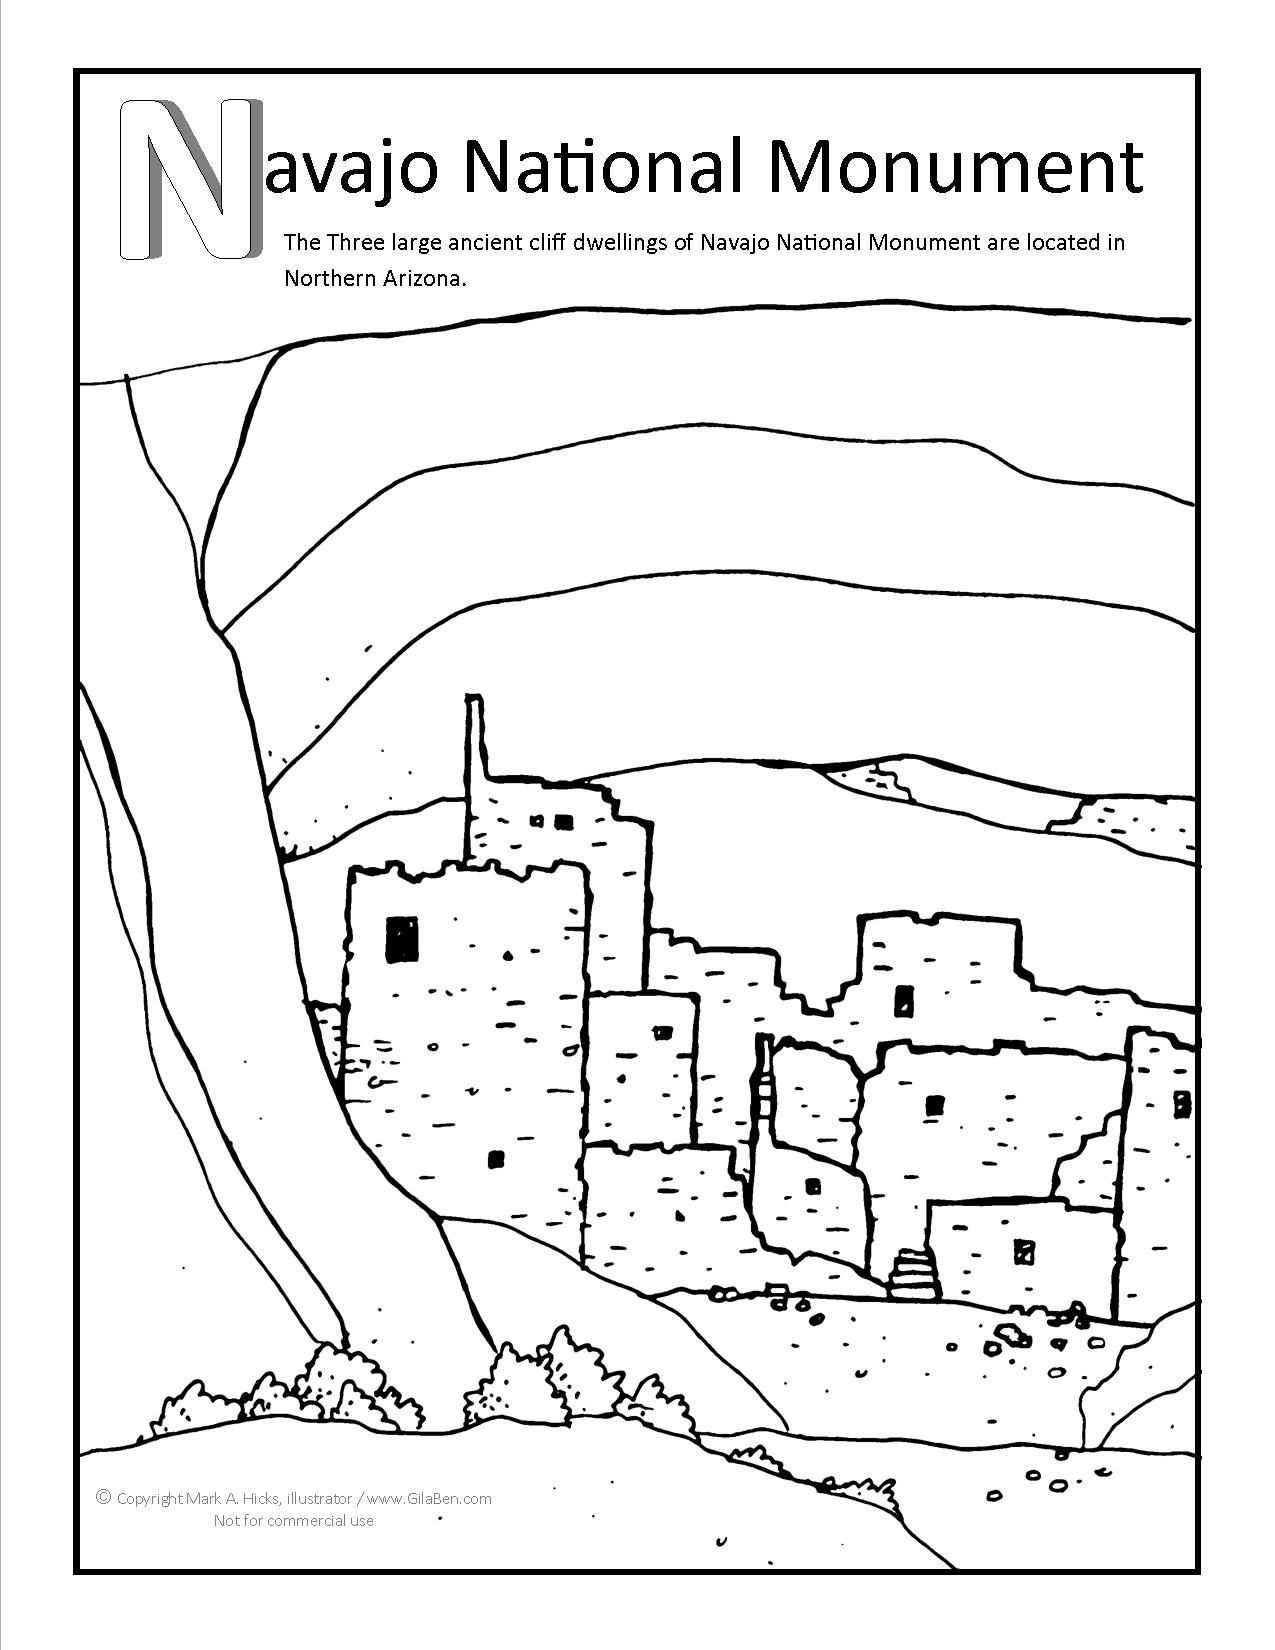 Navajo National Monument Coloring Page At Gilaben